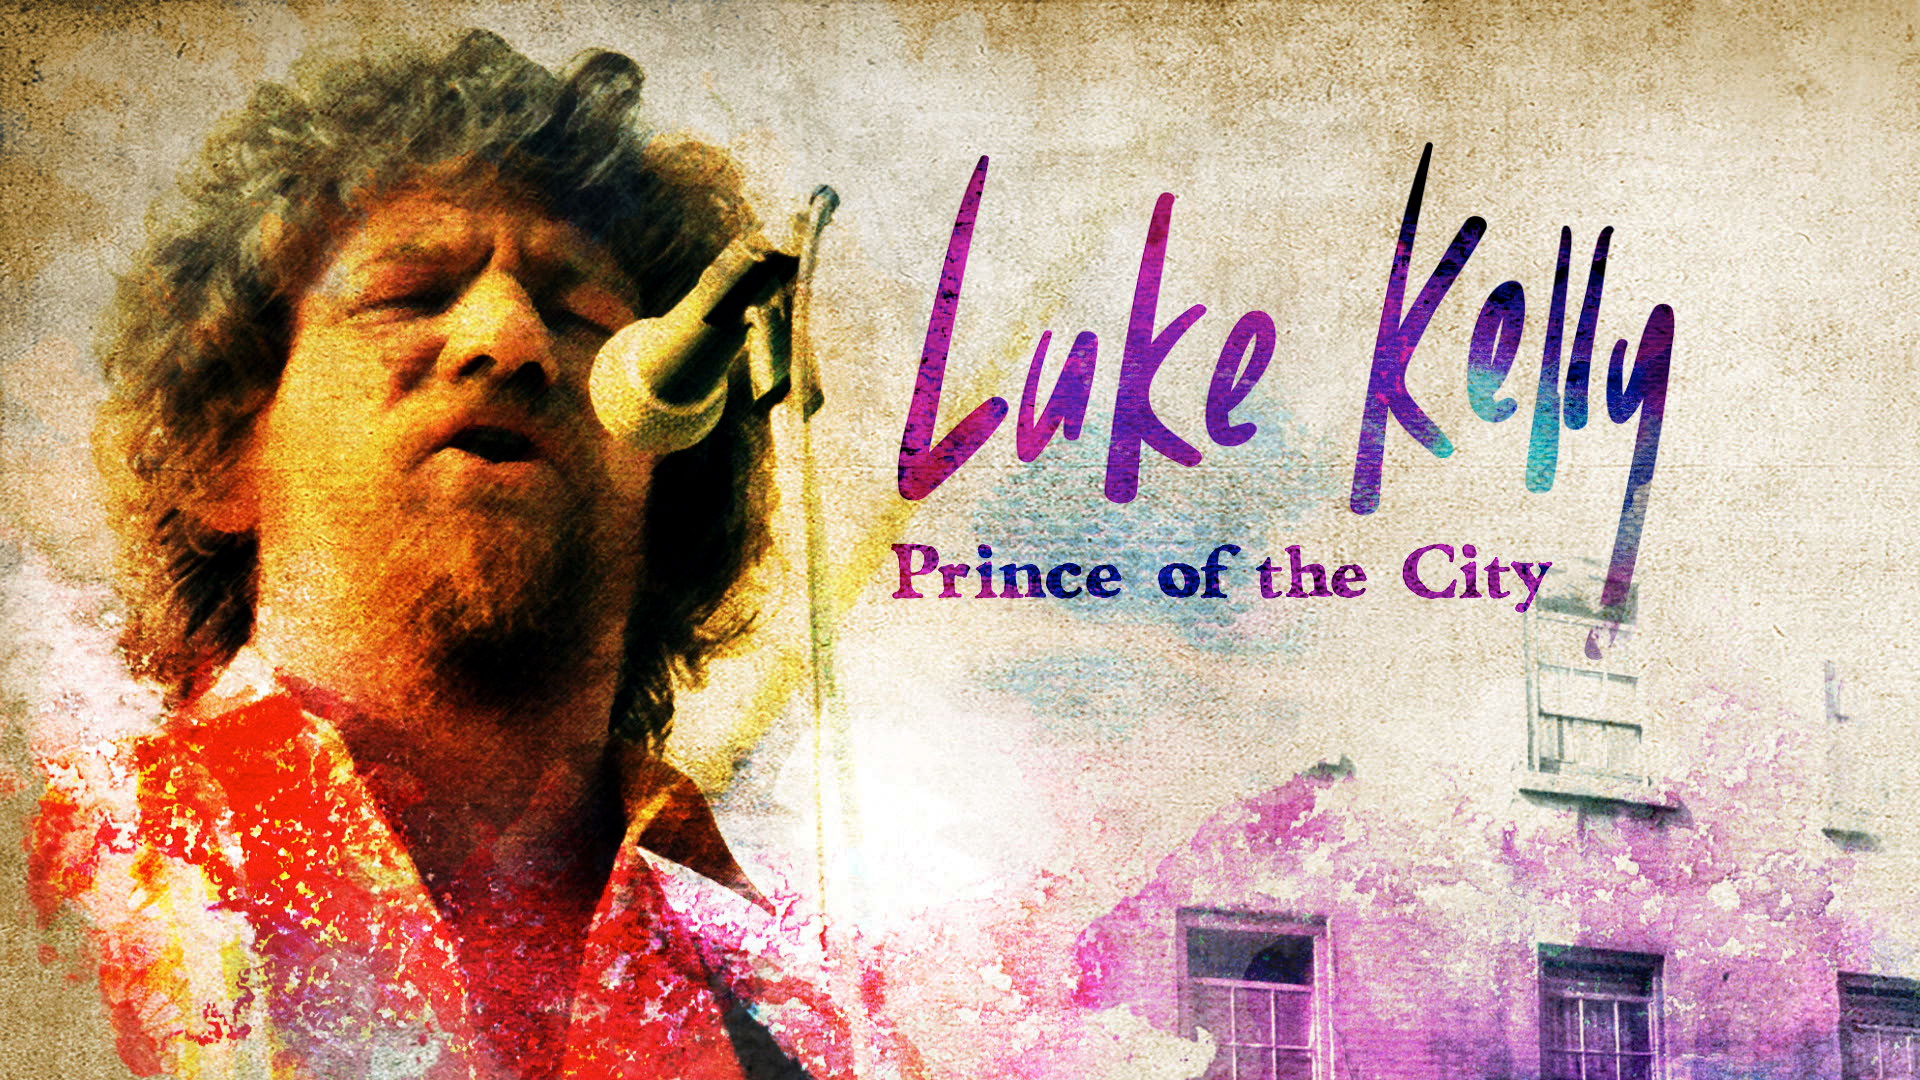 Cover image: Luke Kelly - Prince of the CIty